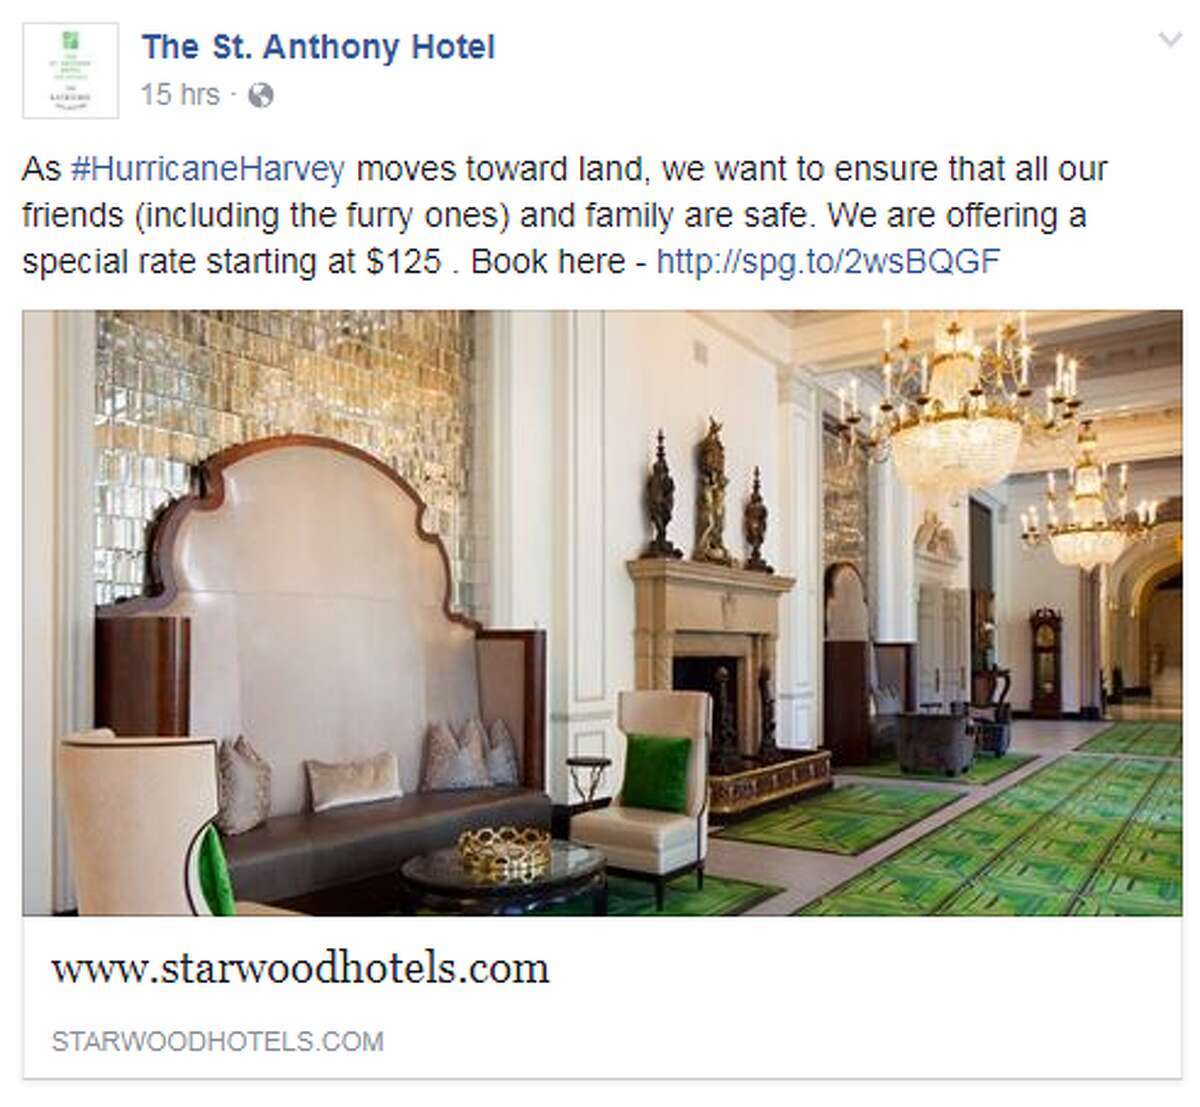 The St. Anthony Hotel The downtown San Antonio hotel is offering special rates starting at $125 and